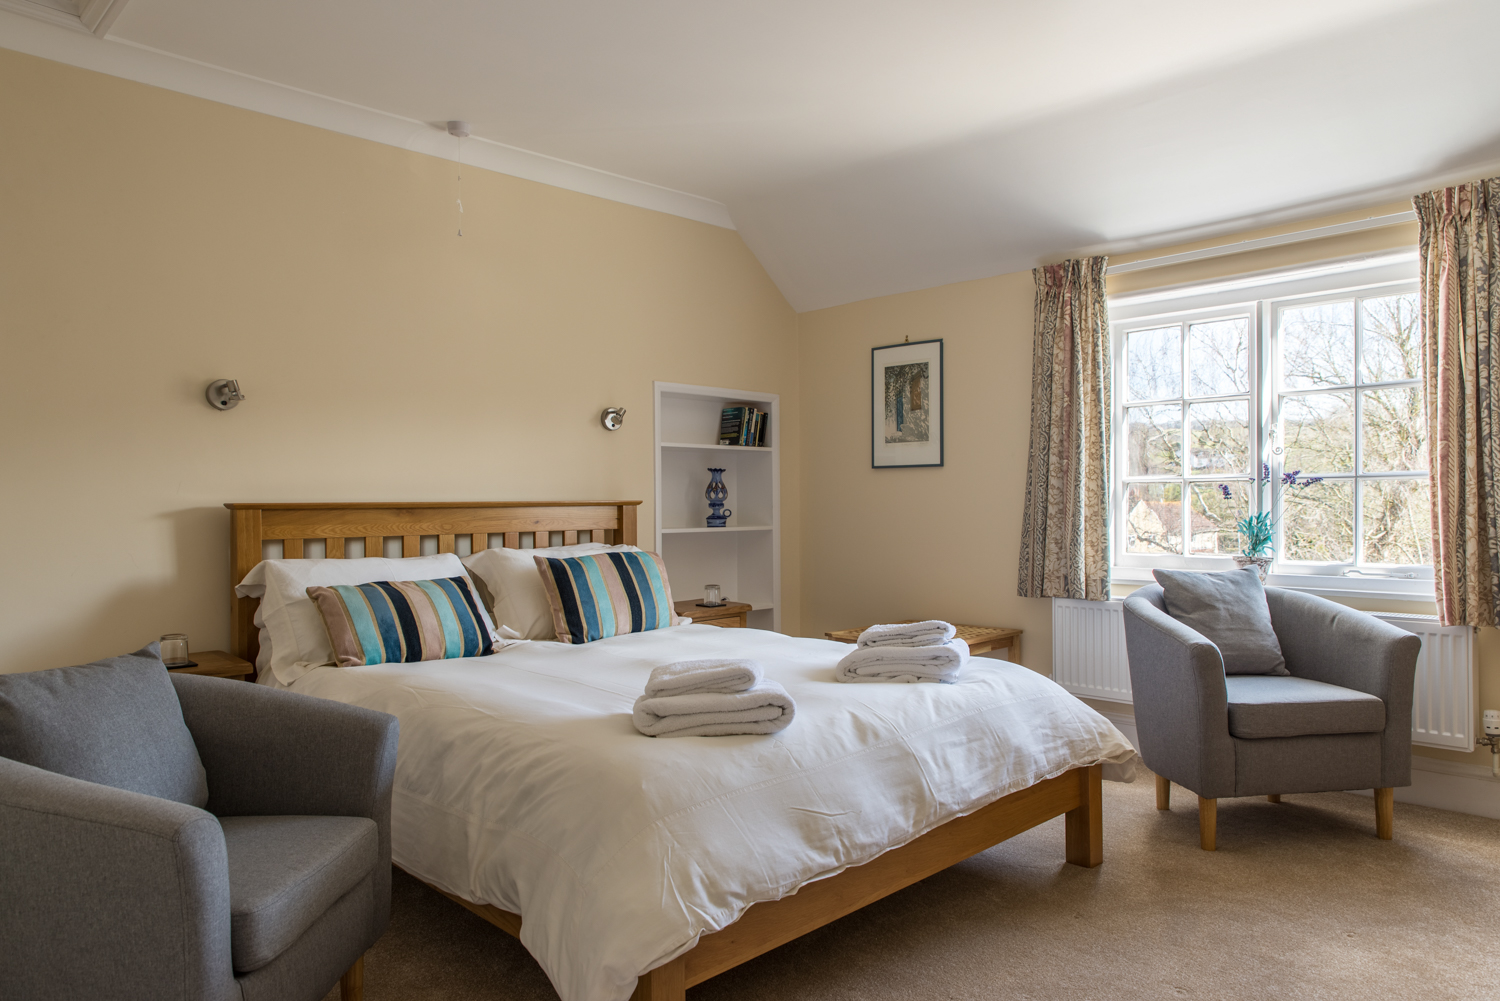 King size Bedroom The Rooms Queenswood